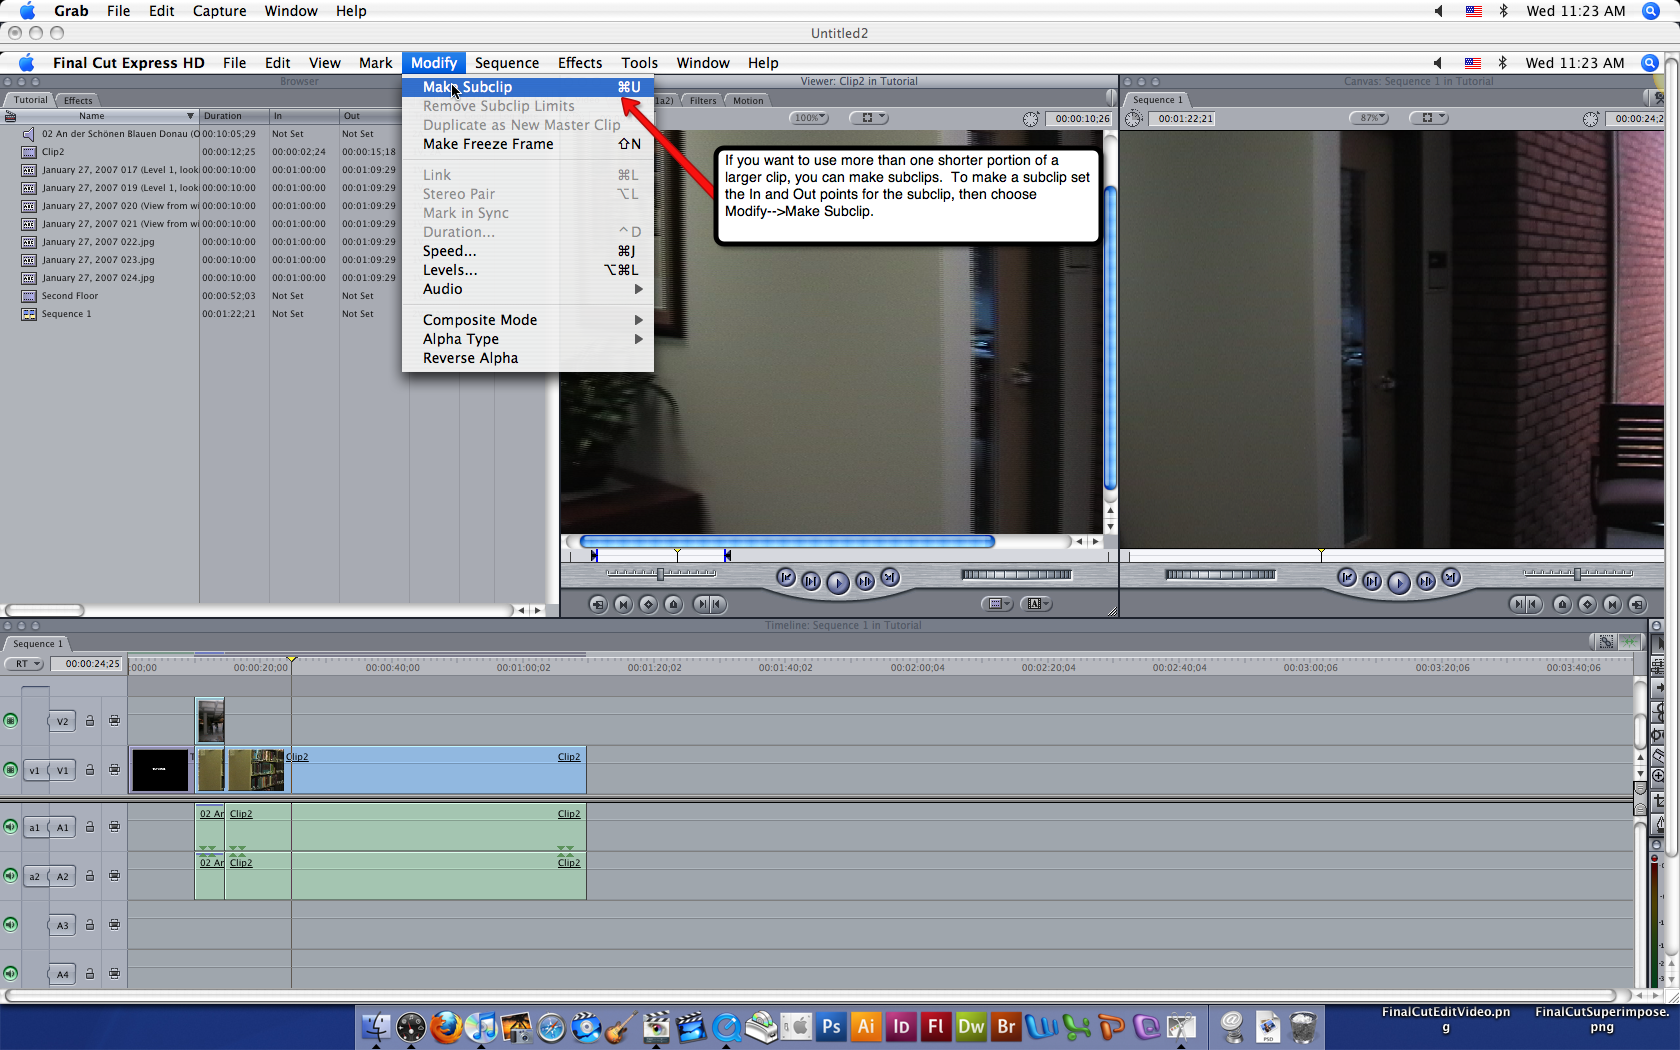 Visual guide to editing video in Final Cut Express HD step 2.